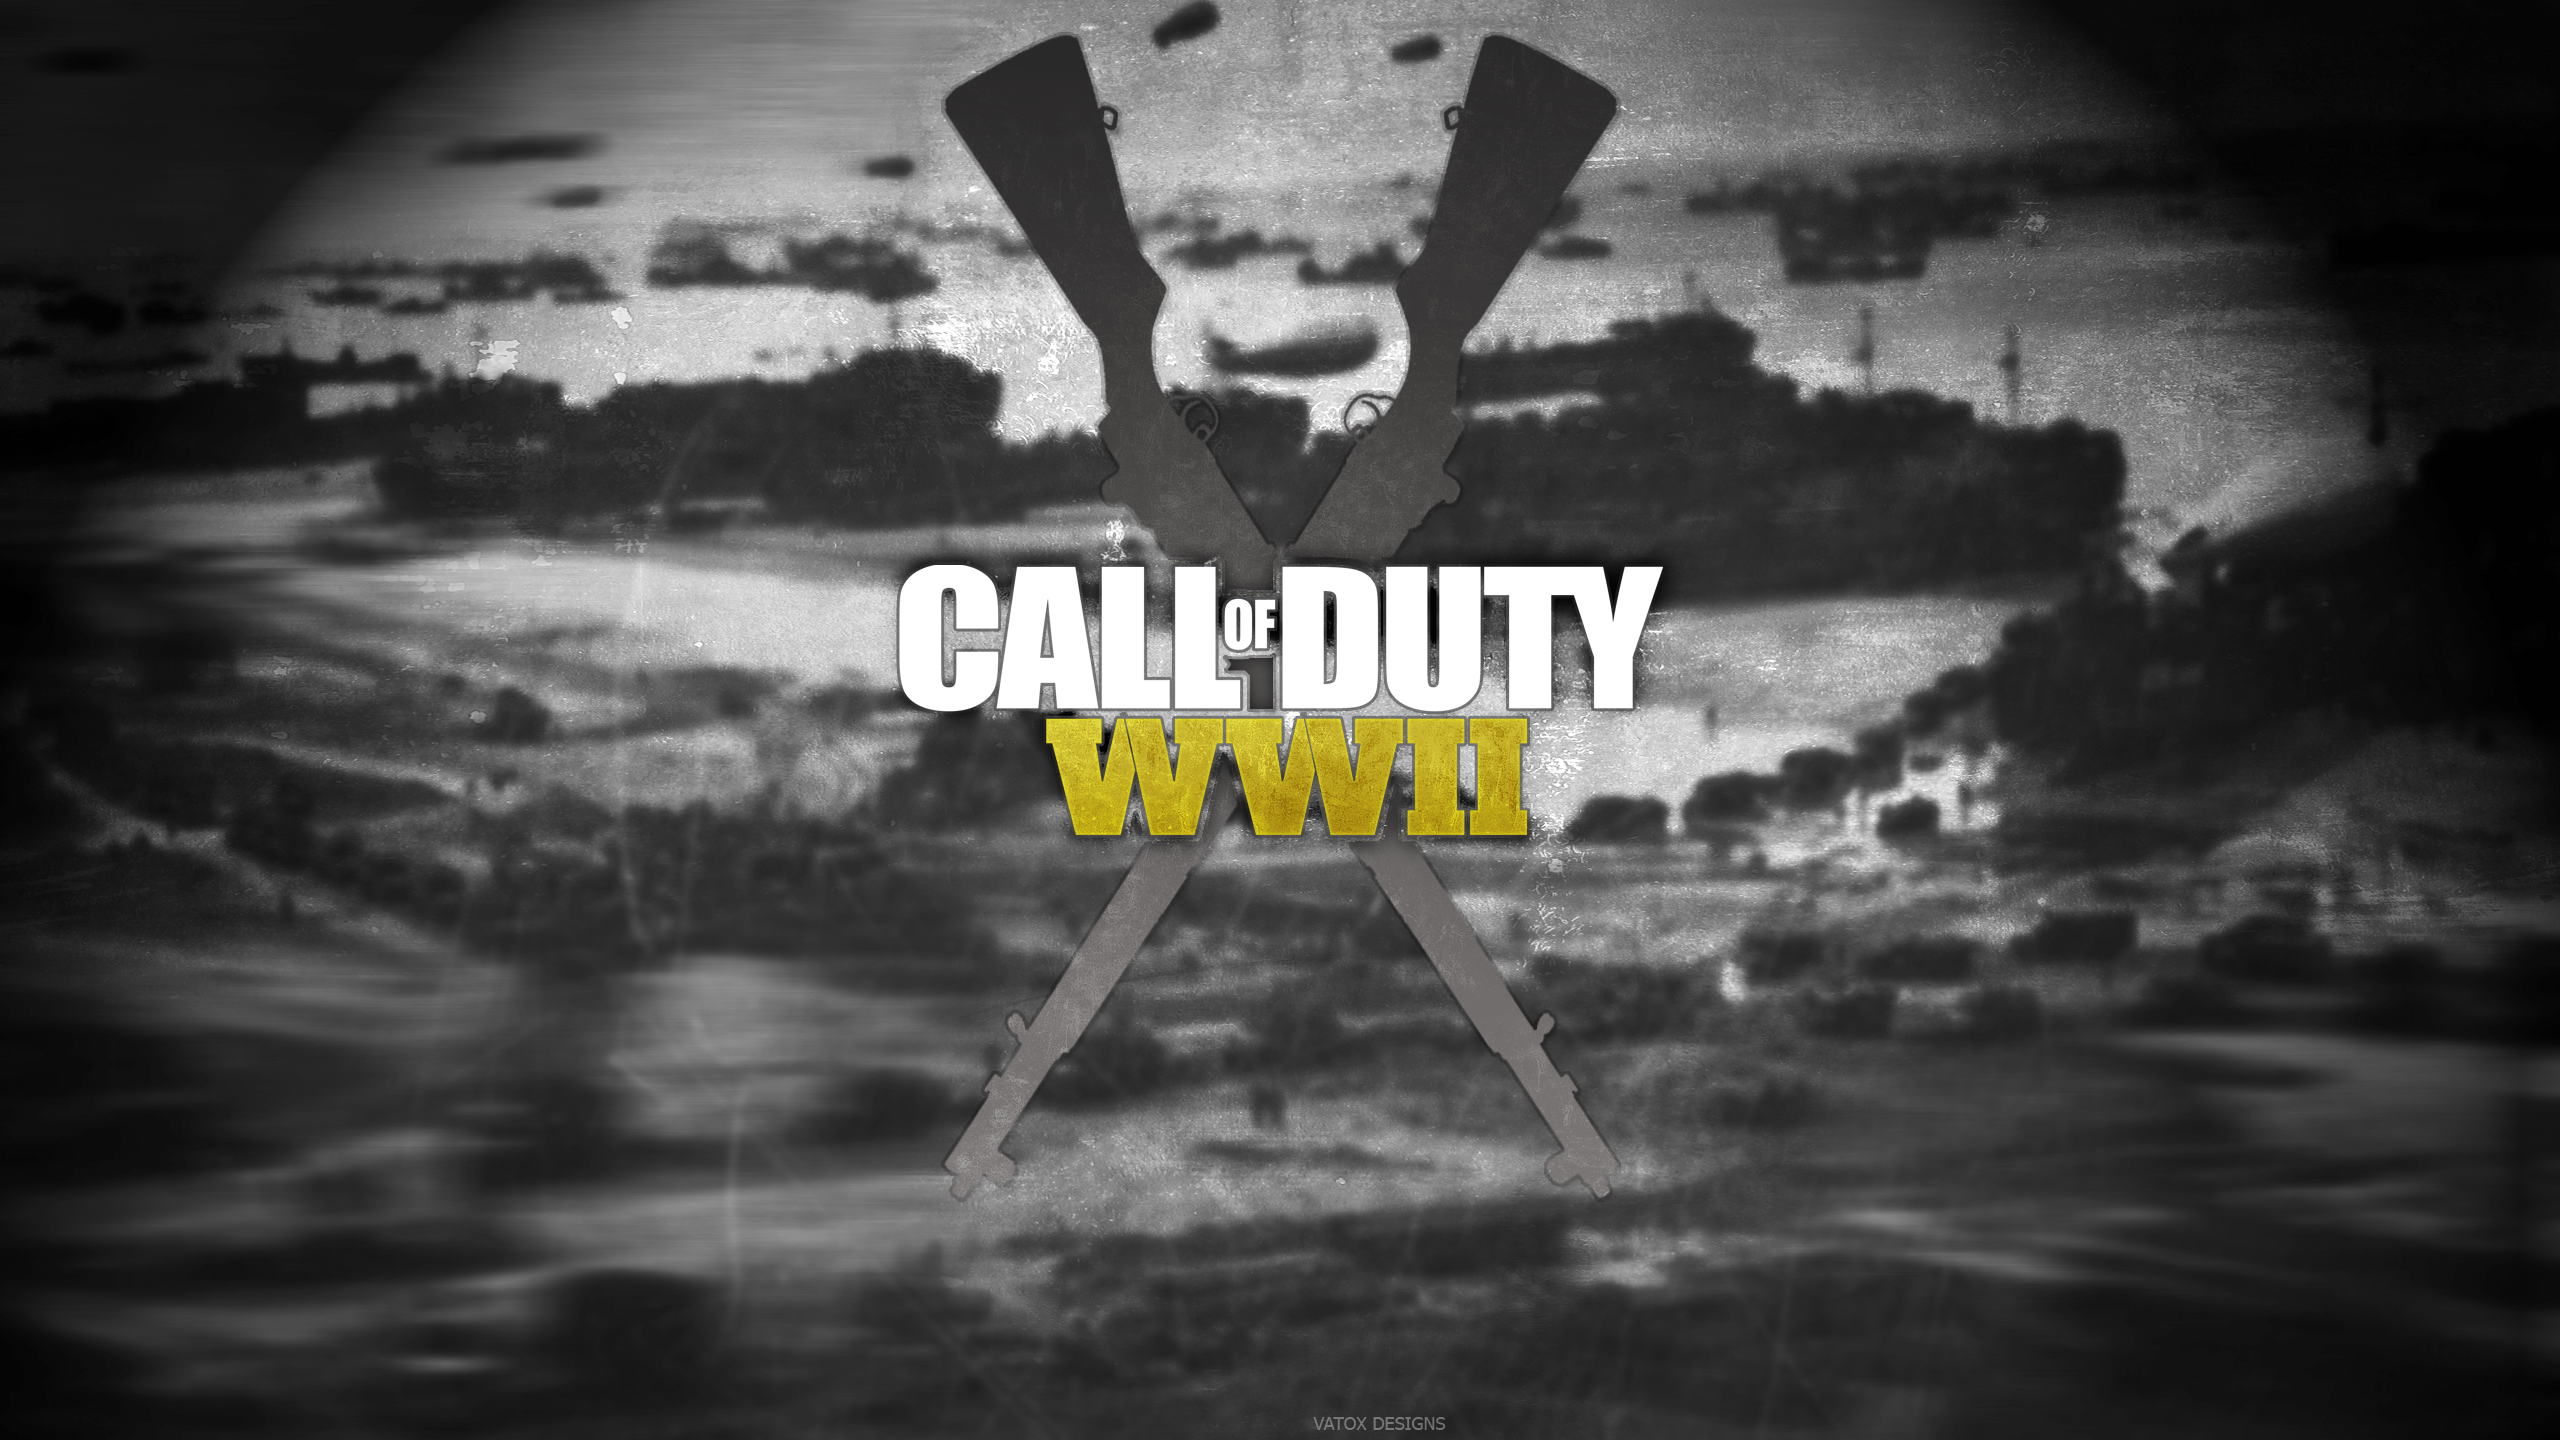 Call of duty wwii wallpapers wallpaper cave - Call of duty ww2 desktop ...